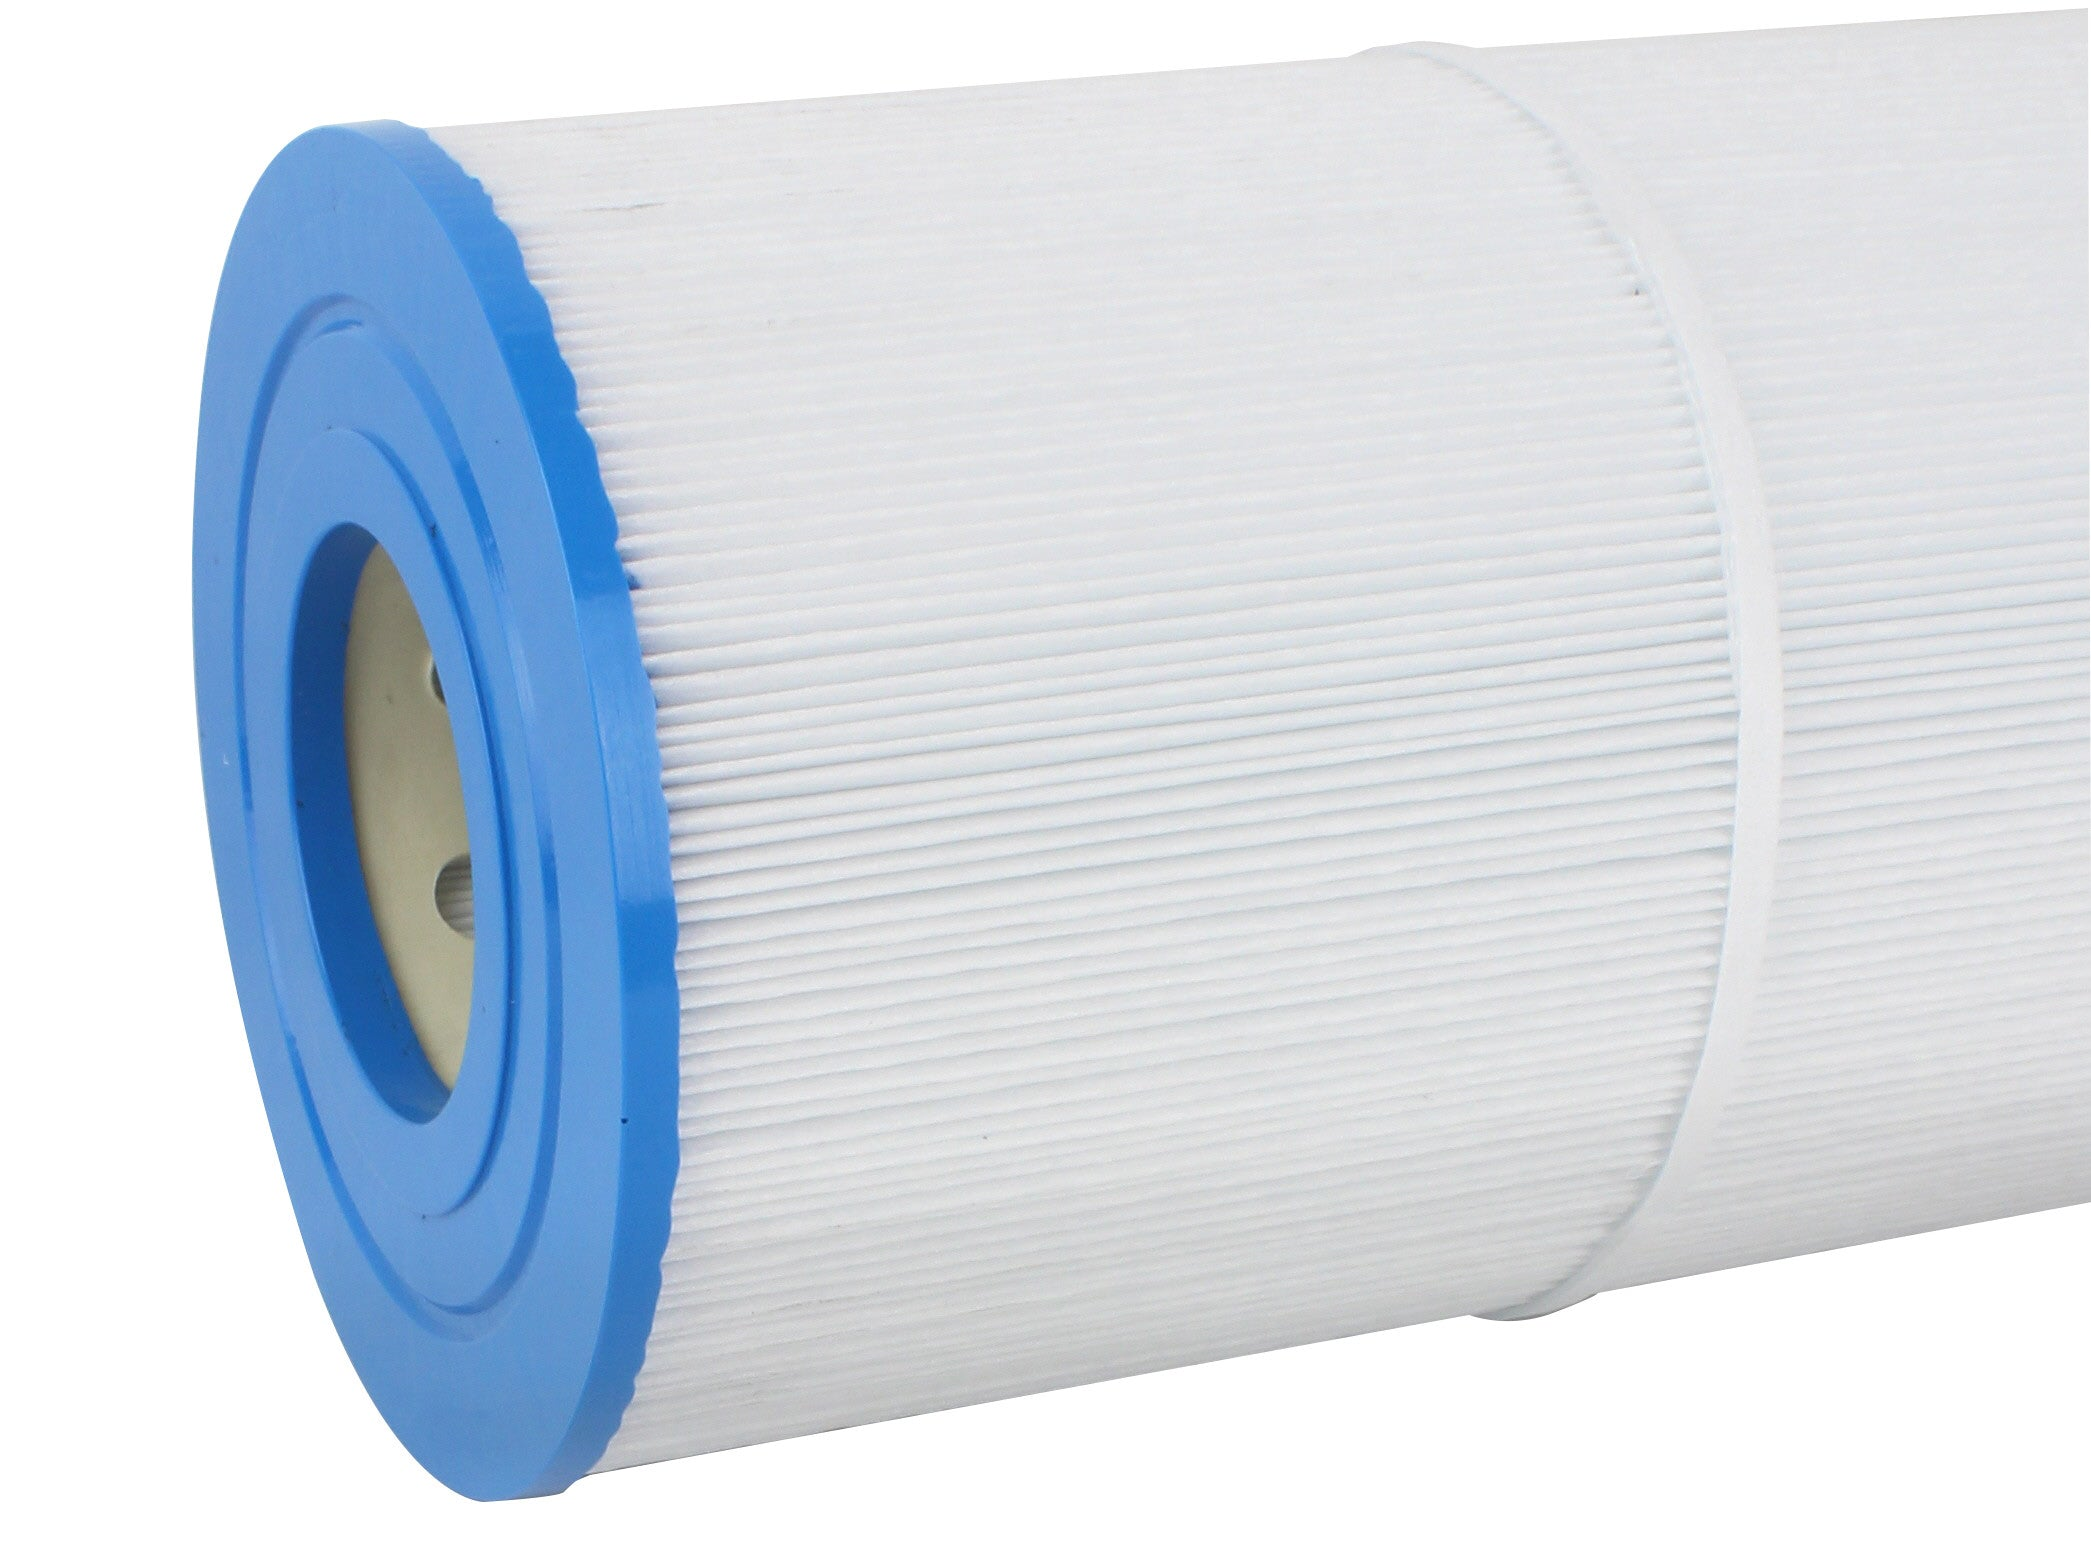 Replaces Unicel C-7474, Pleatco PCM88 • Pool & Spa Filter Cartridge-Filter Cartridge-FilterDeal.com